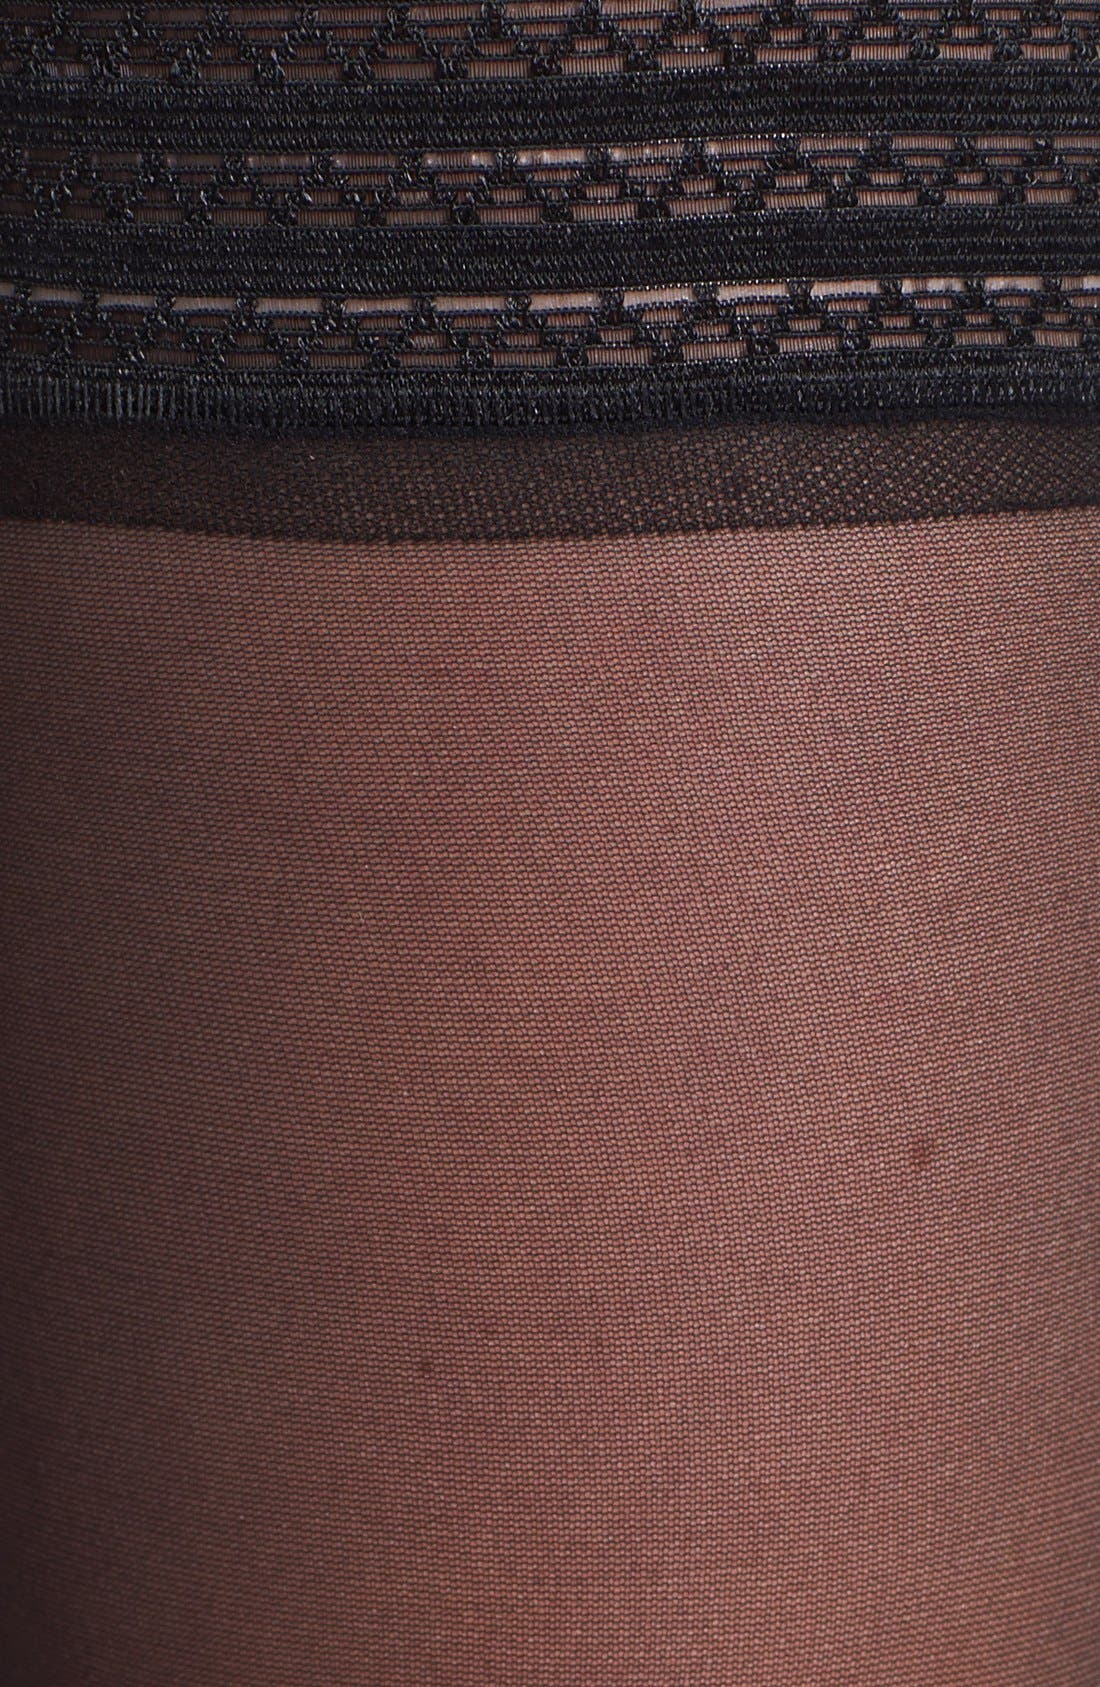 Sheer Thigh High Stay-Up Stockings,                             Alternate thumbnail 3, color,                             BLACK